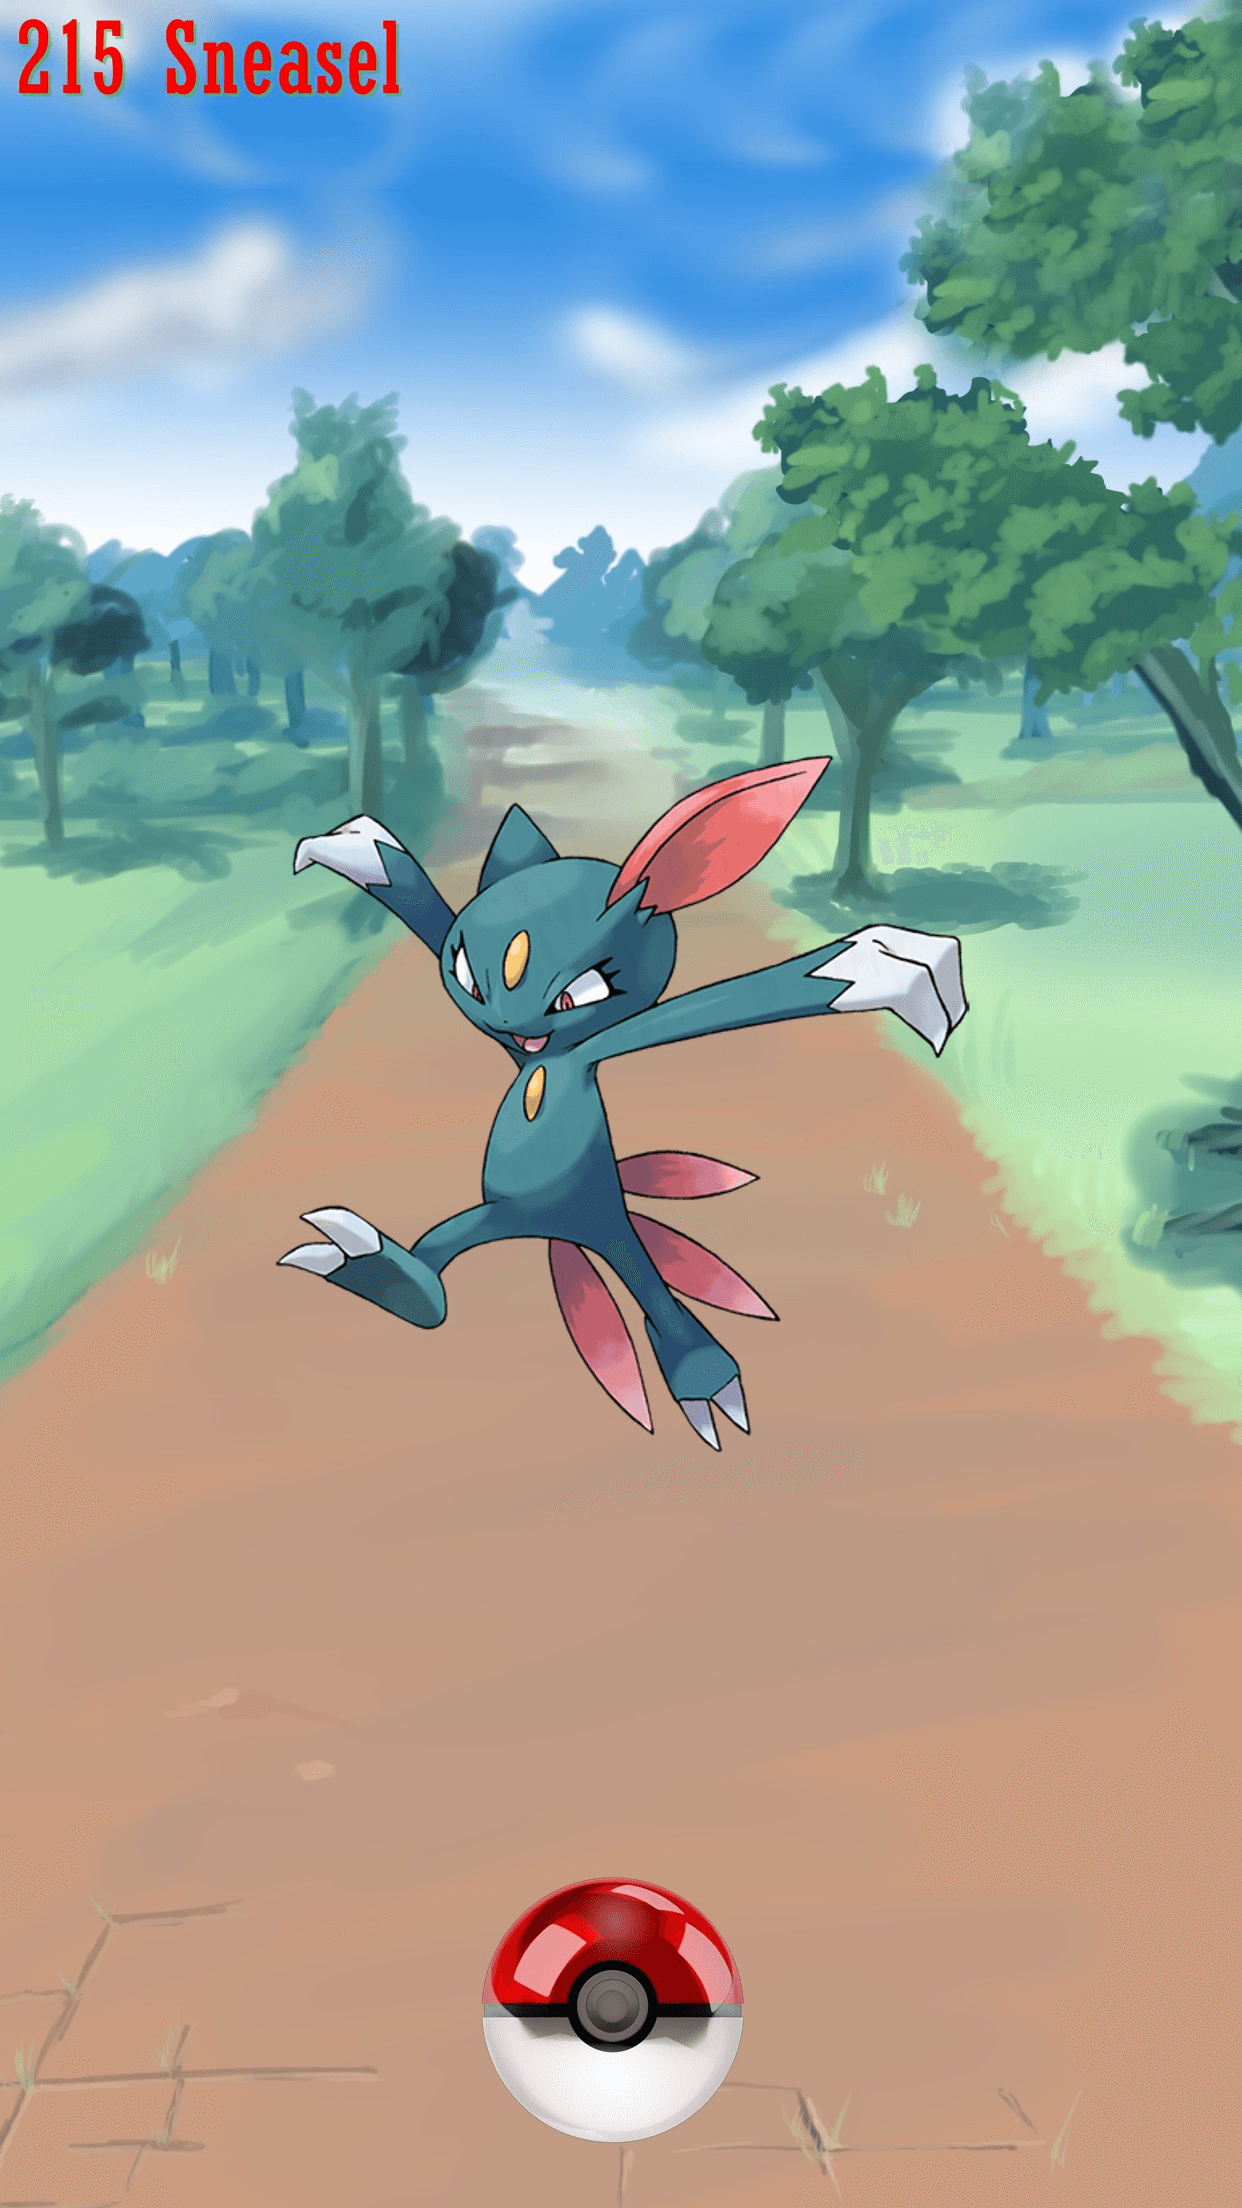 215 Street Pokeball Sneasel | Wallpaper